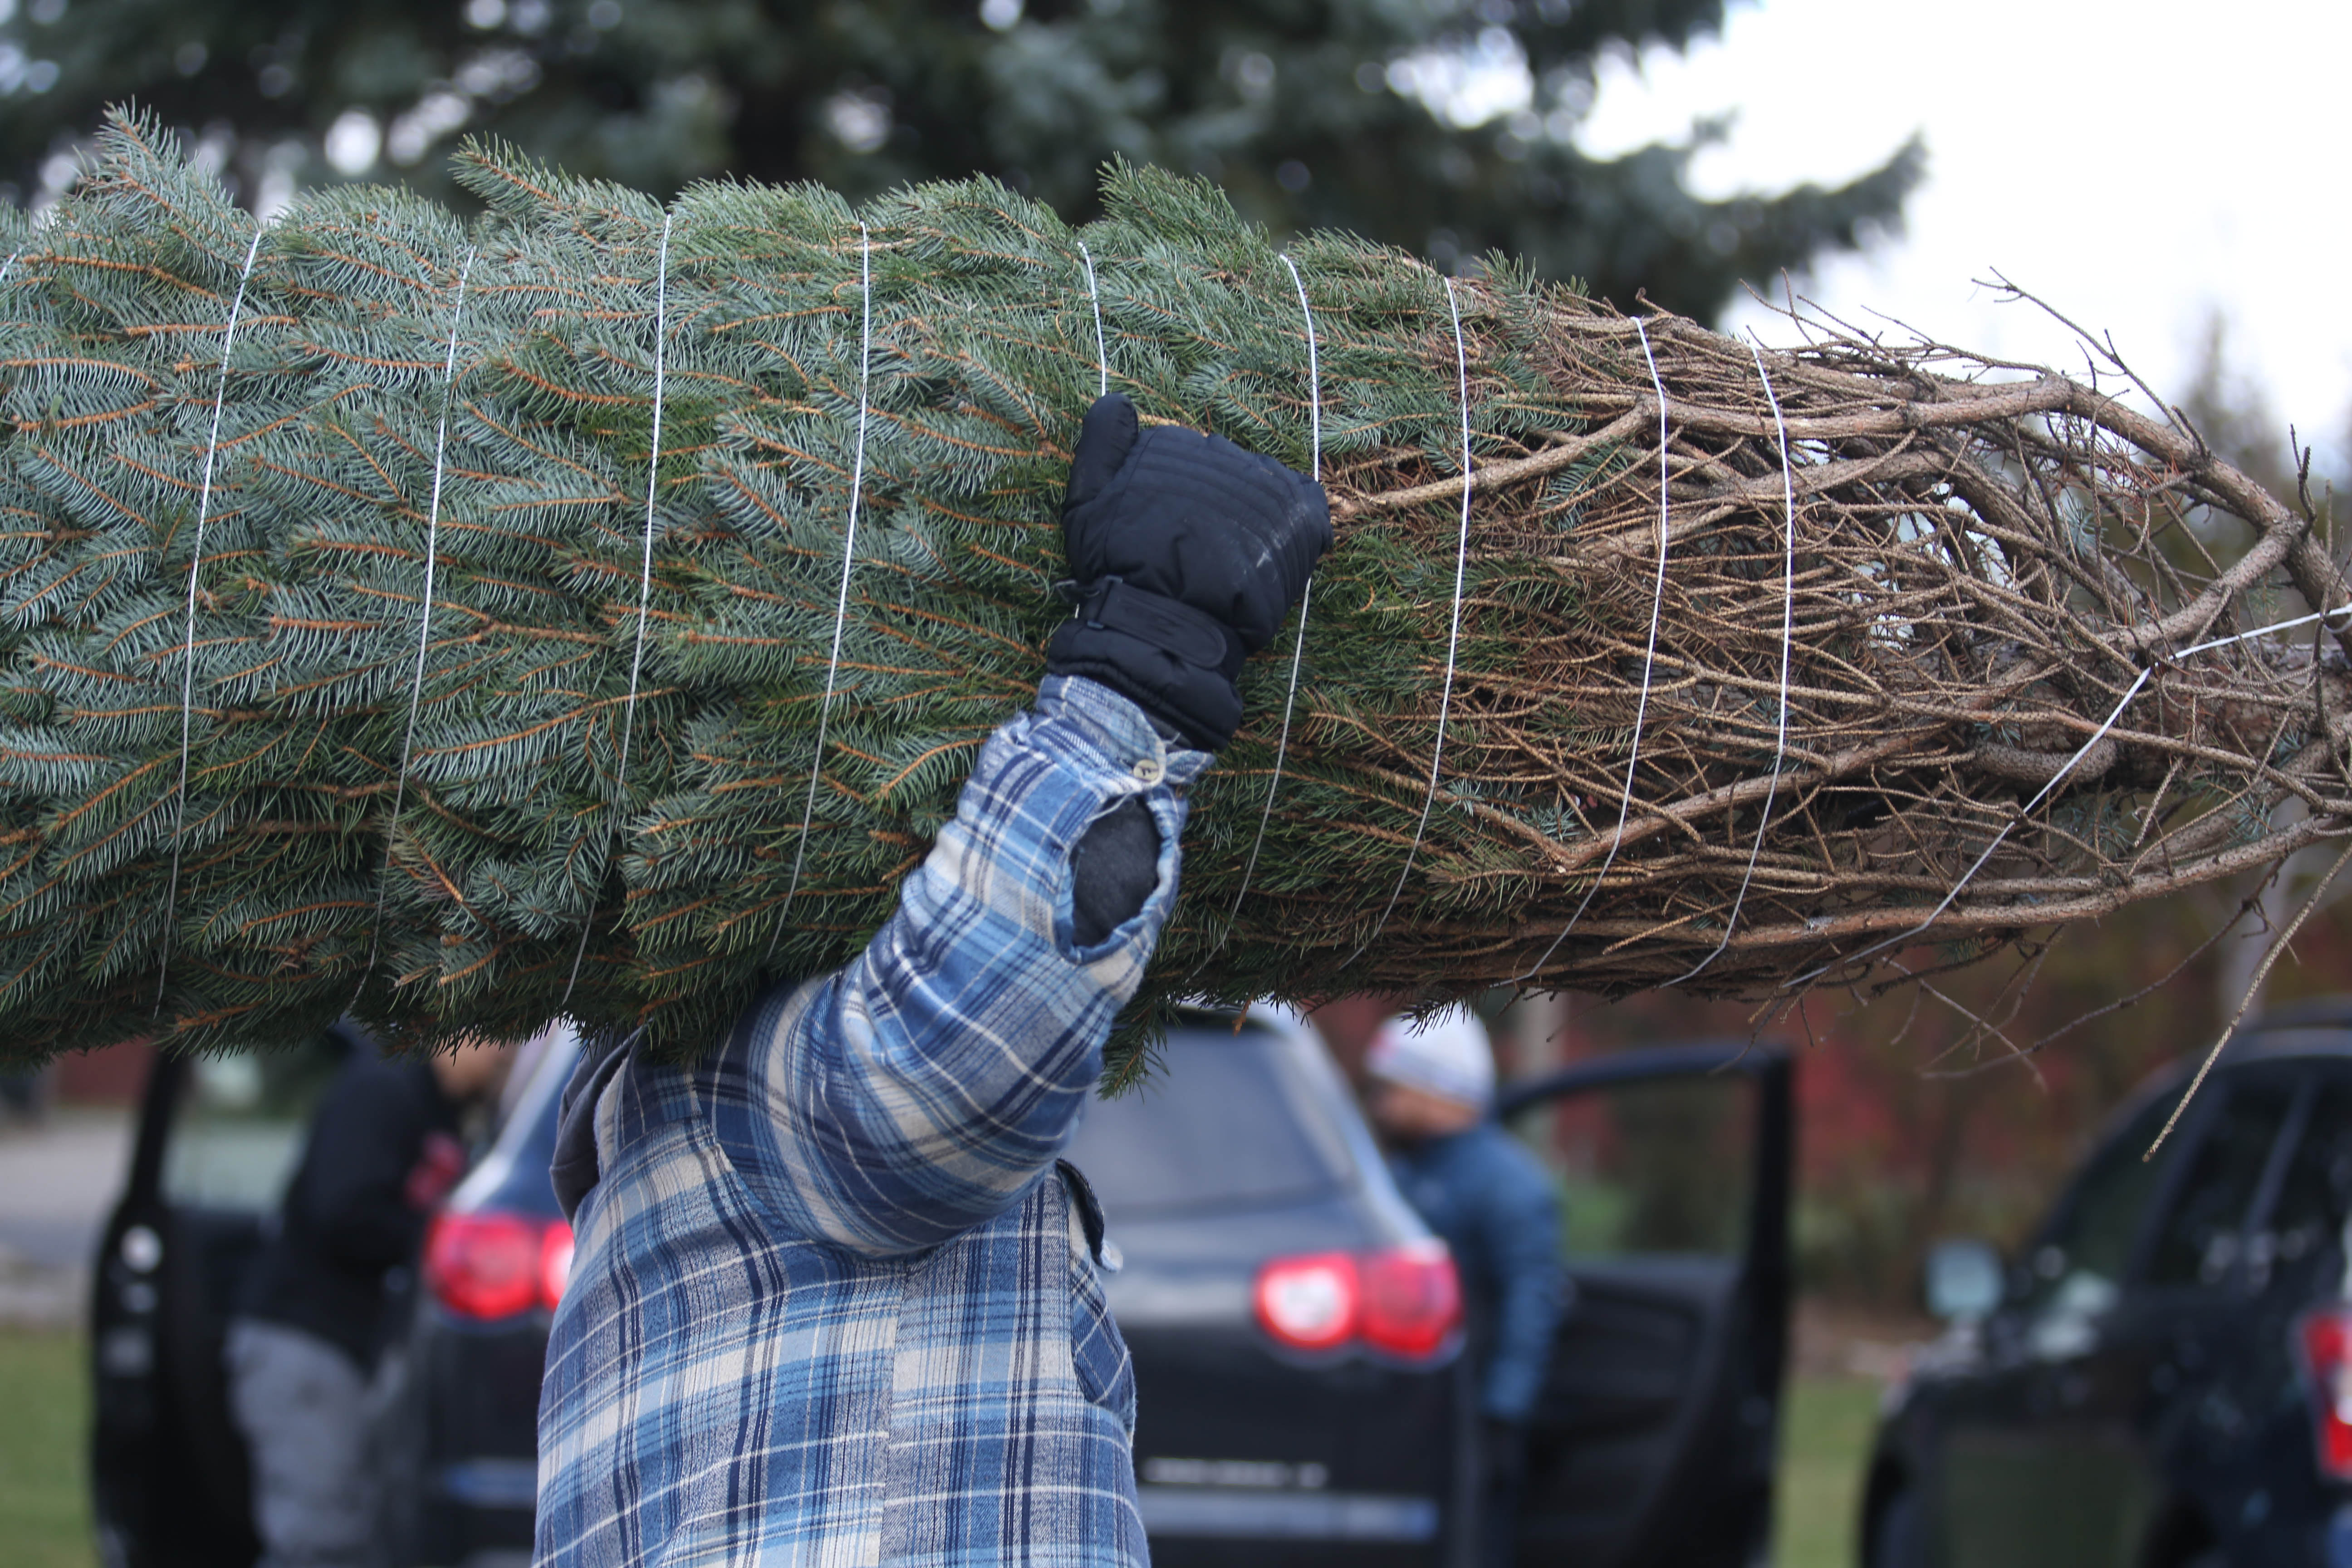 Jurek Plantations at 6600 Strickler Road  in Clarence is a popular place to go to cut down your own Christmas tree.    (Sharon Cantillon/Buffalo News)